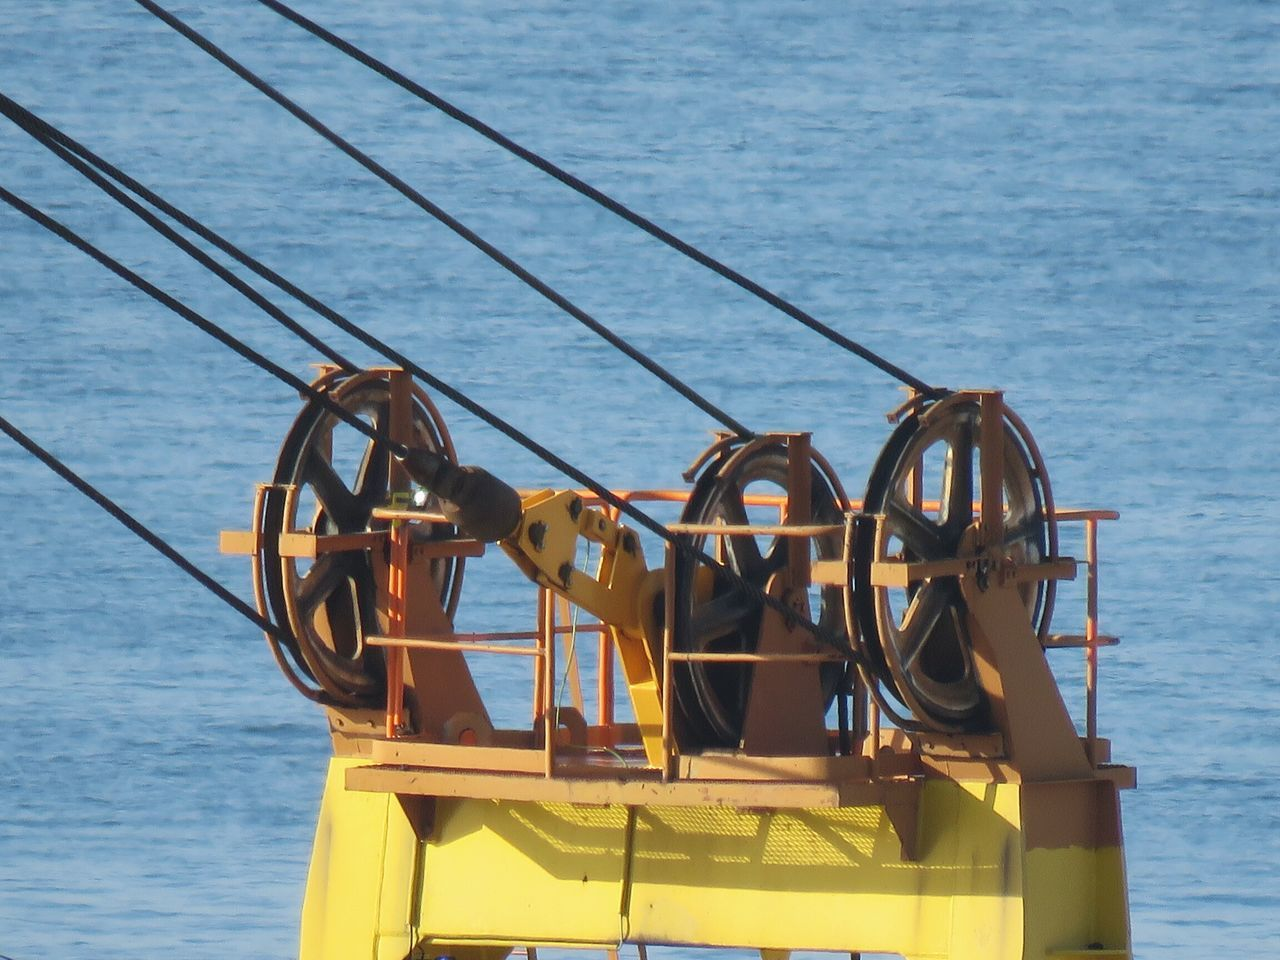 Sea Industry Outdoors No People Sailing Ship Day Industry Machinery From My Point Of View 3XSPUnity Eye4photography  Working Work Work In Progress Work Tool Machine Water